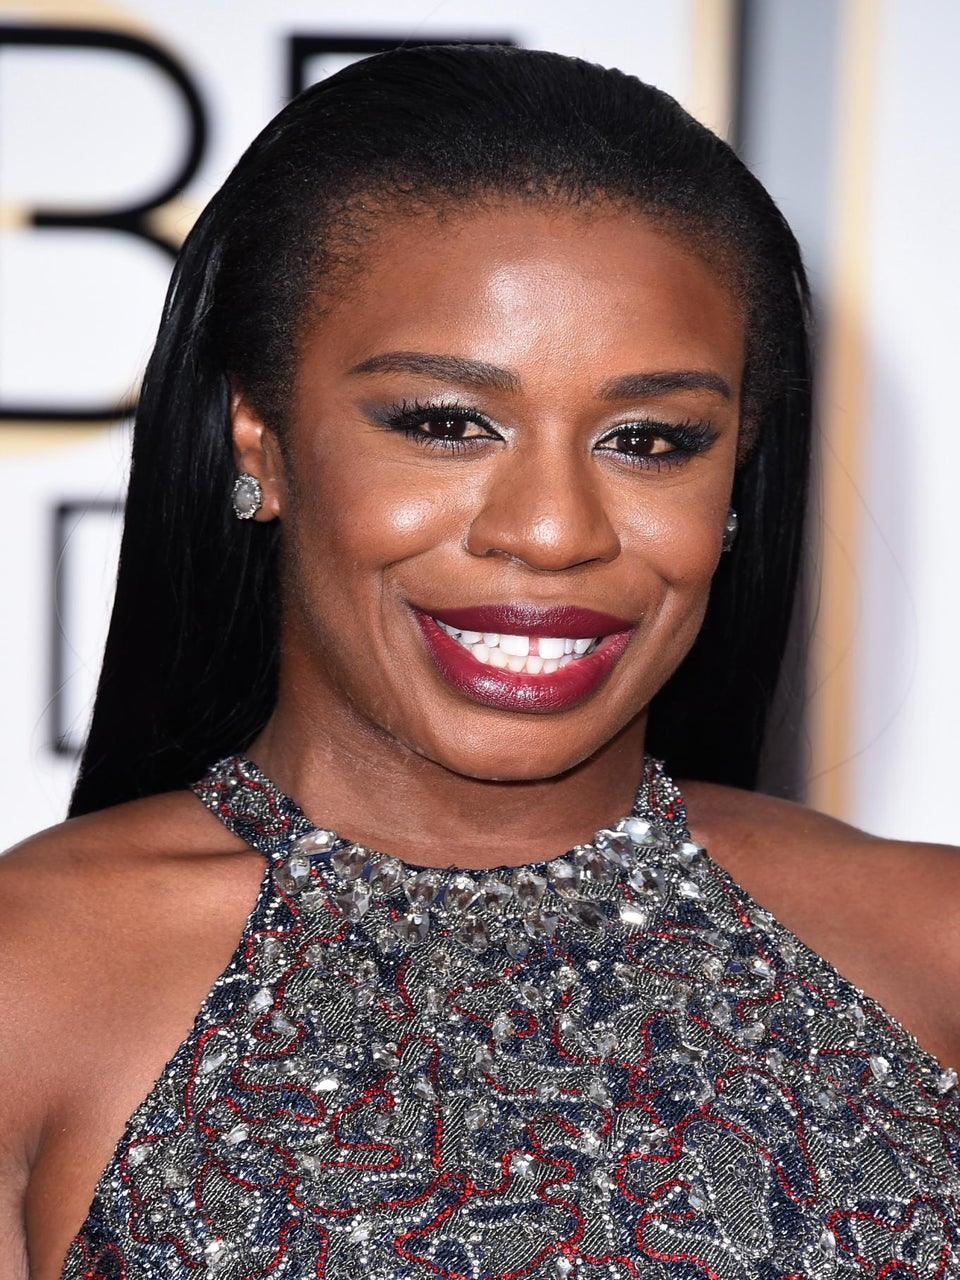 Get The Look: Uzo Aduba at The 2015 Golden Globes